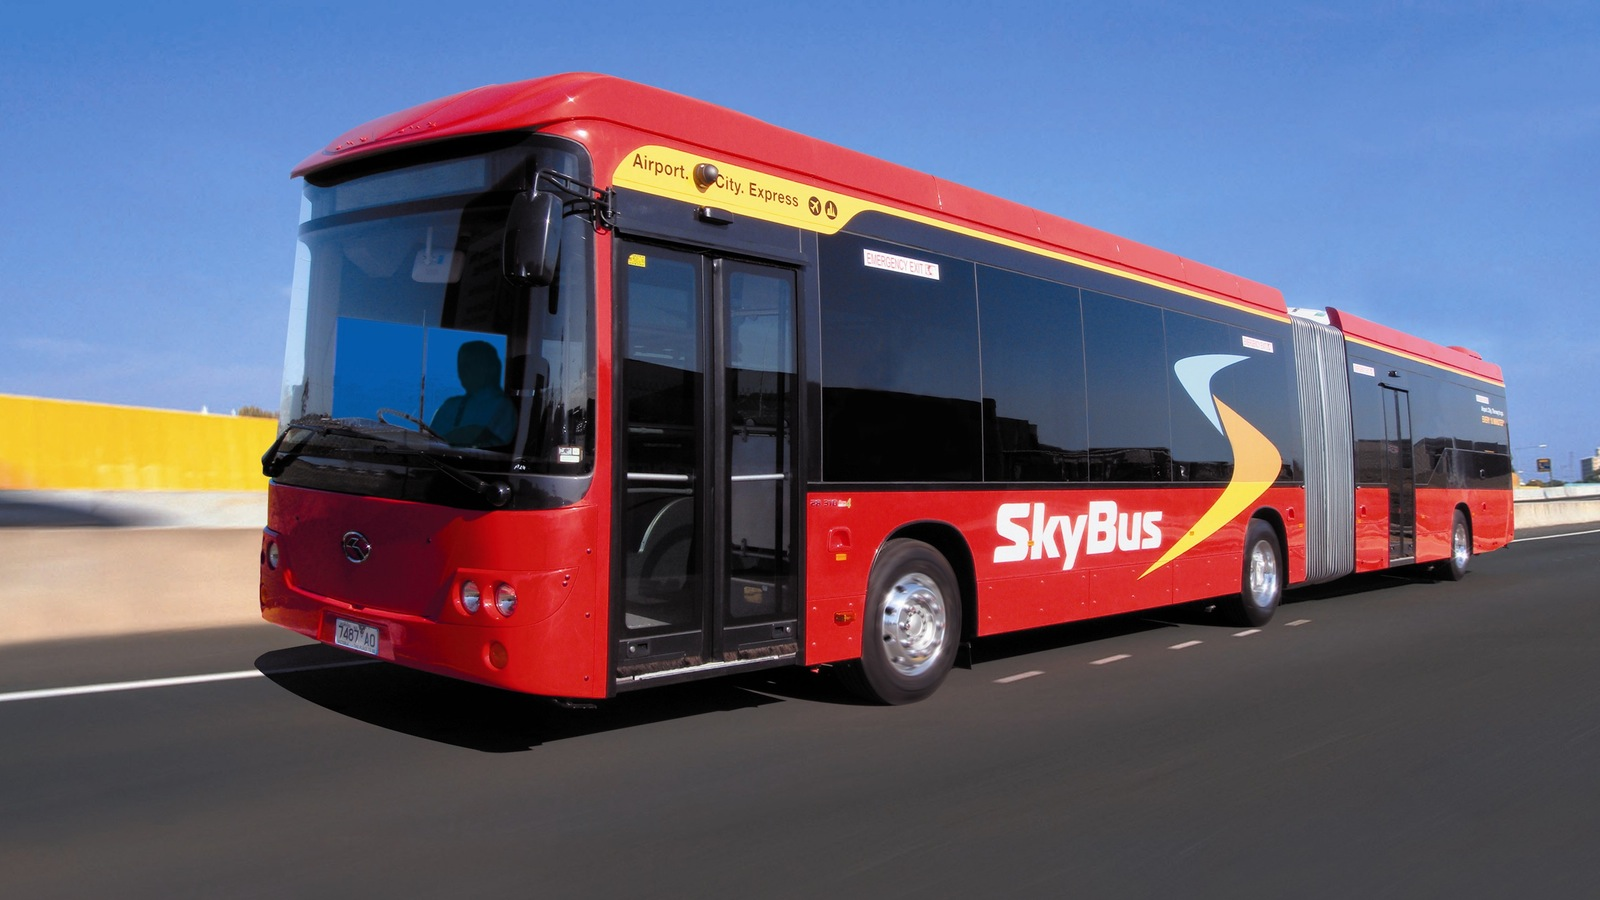 SkyBus - Melbourne Airport/City